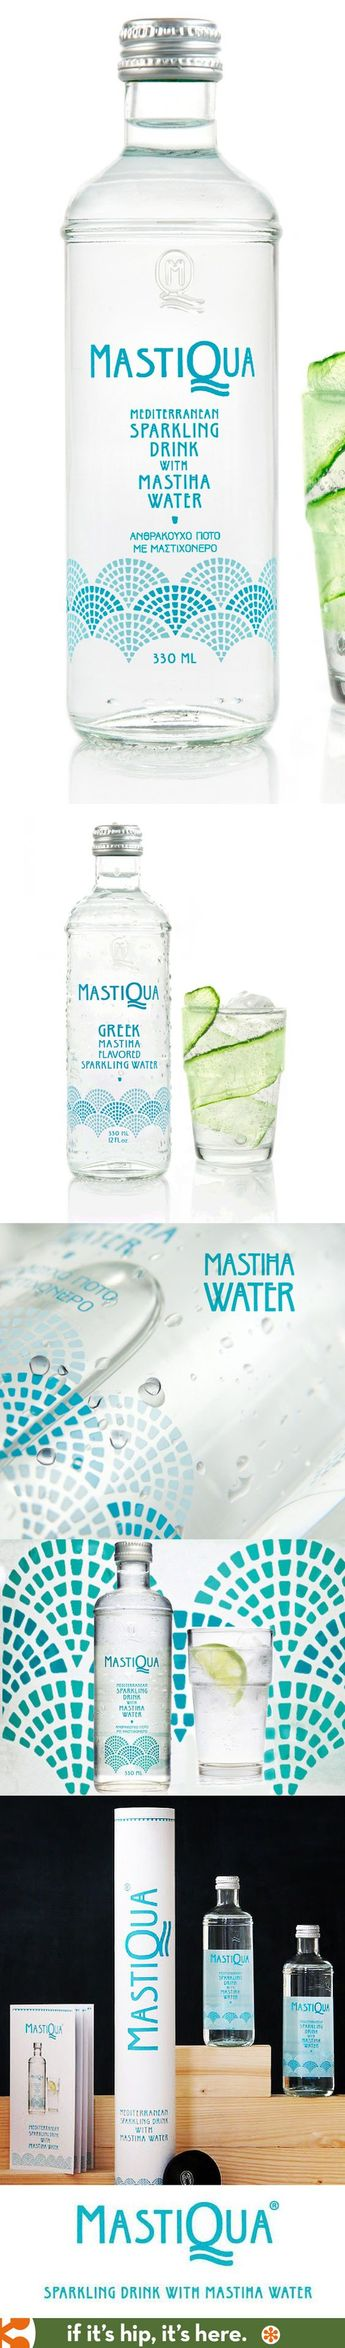 Mastiqua Sparkling drink from Greece is made with Mastiha water and has the very appropriate 'mosaic' design on their bottle.: